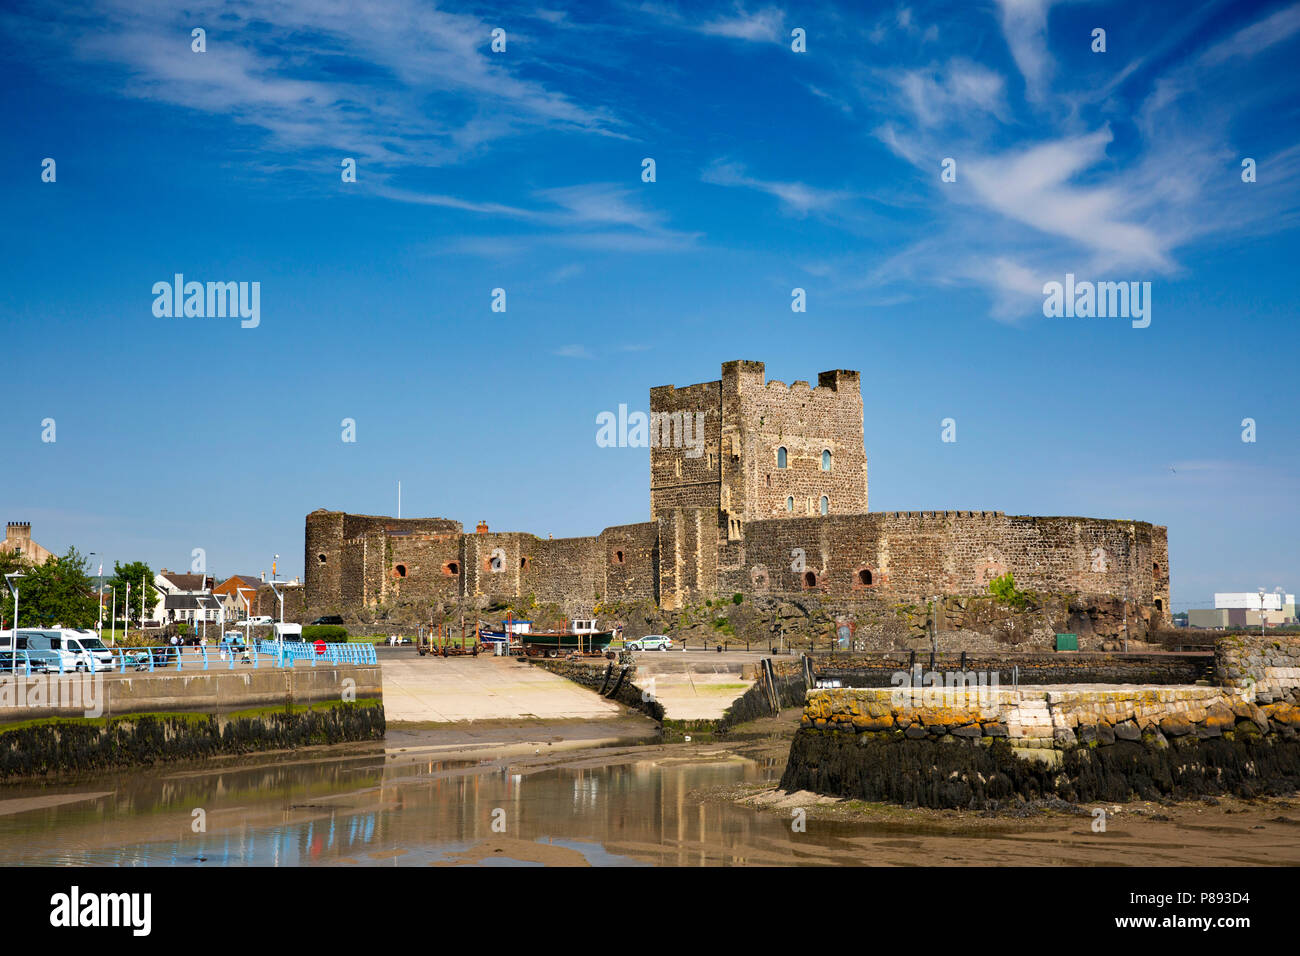 UK, Northern Ireland, Co Antrim, Carrickfergus, Norman Castle from across the harbour at low tide - Stock Image